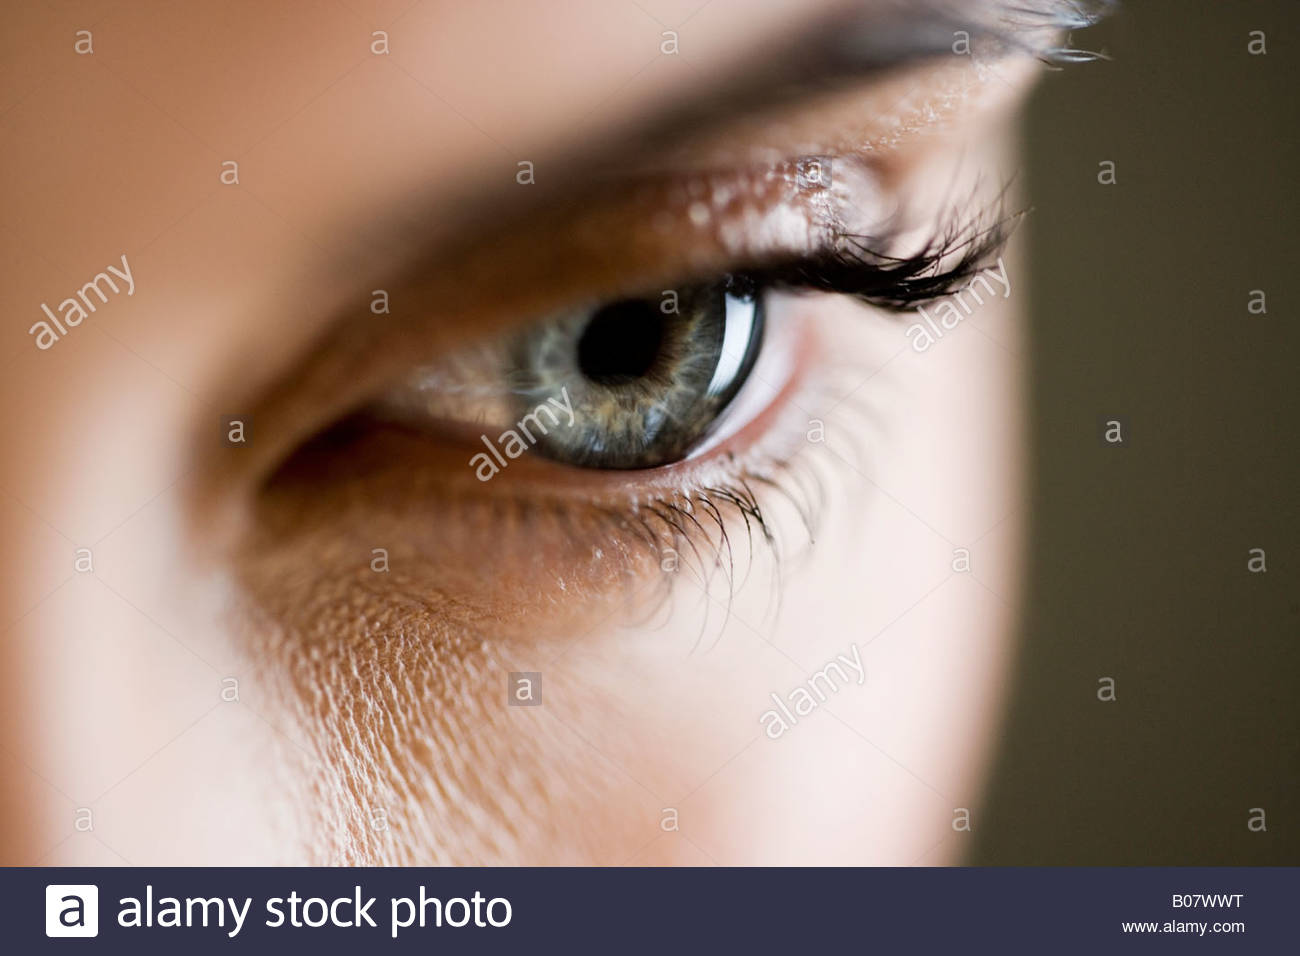 Detail of woman's face showing left eye Stock Photo